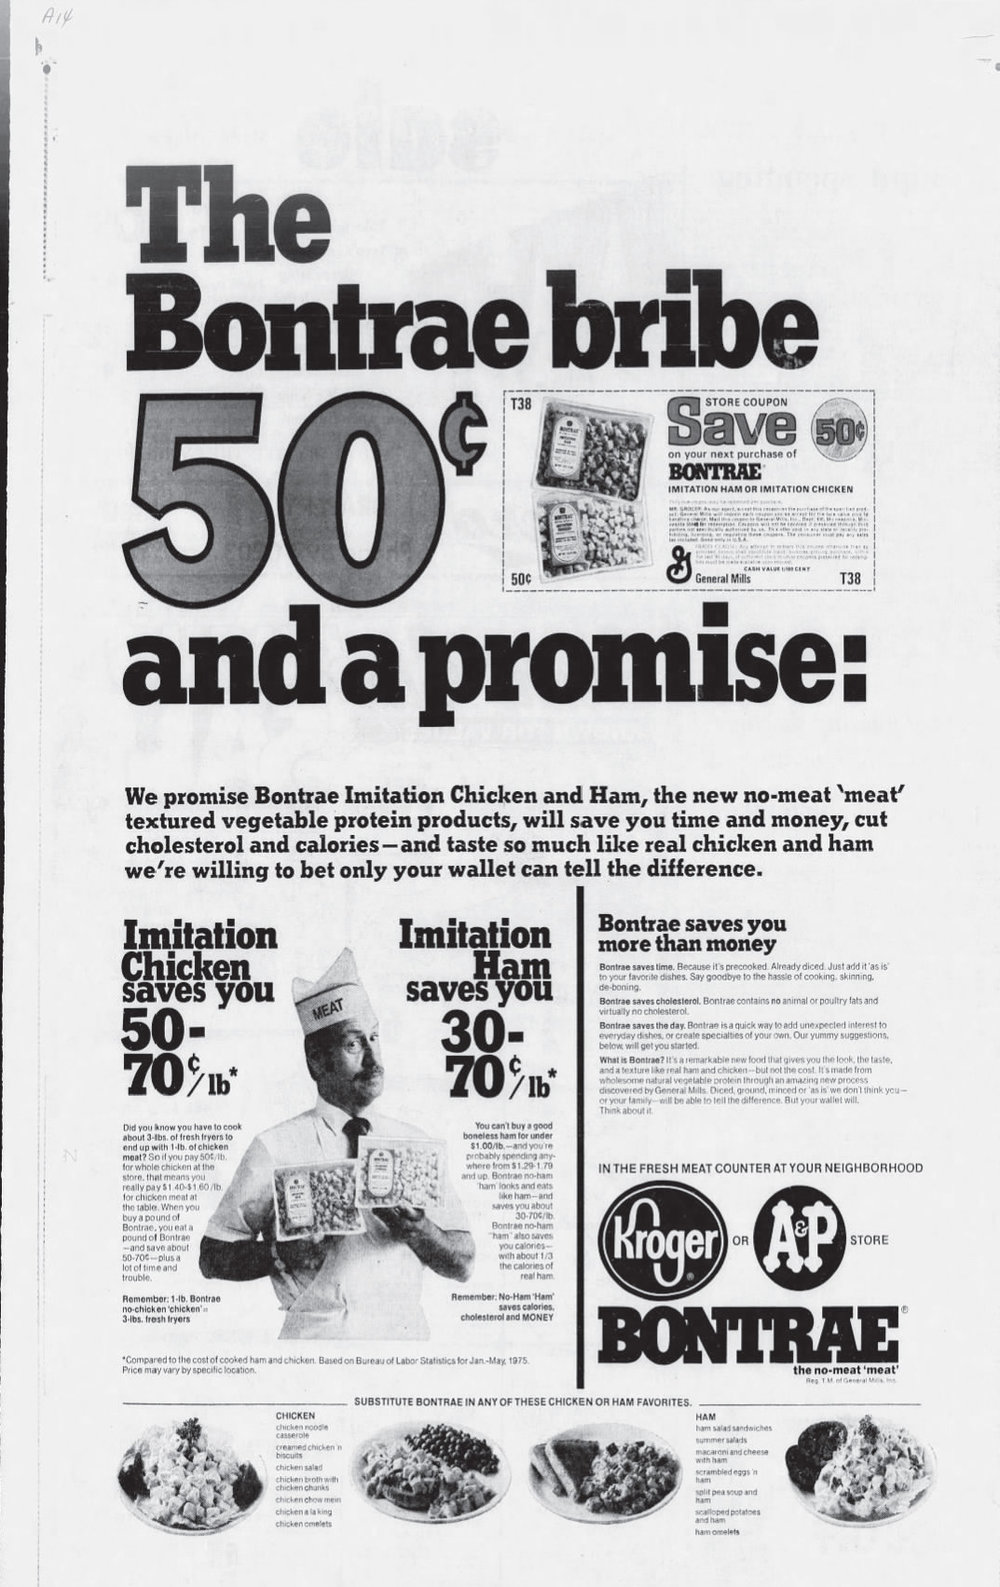 "Advertisement and coupon for Bontrae from Louisville (KY) Courier-Journal, August 14, 1975. [Click to expand.] The advertisement emphasizes the savings, convenience, and health benefits that made Bontrae a better choice than actual meat, while promising consumers that they would not be sacrificing flavor. ""They taste so much like real chicken and ham, we're willing to bet only your wallet can tell the difference."""